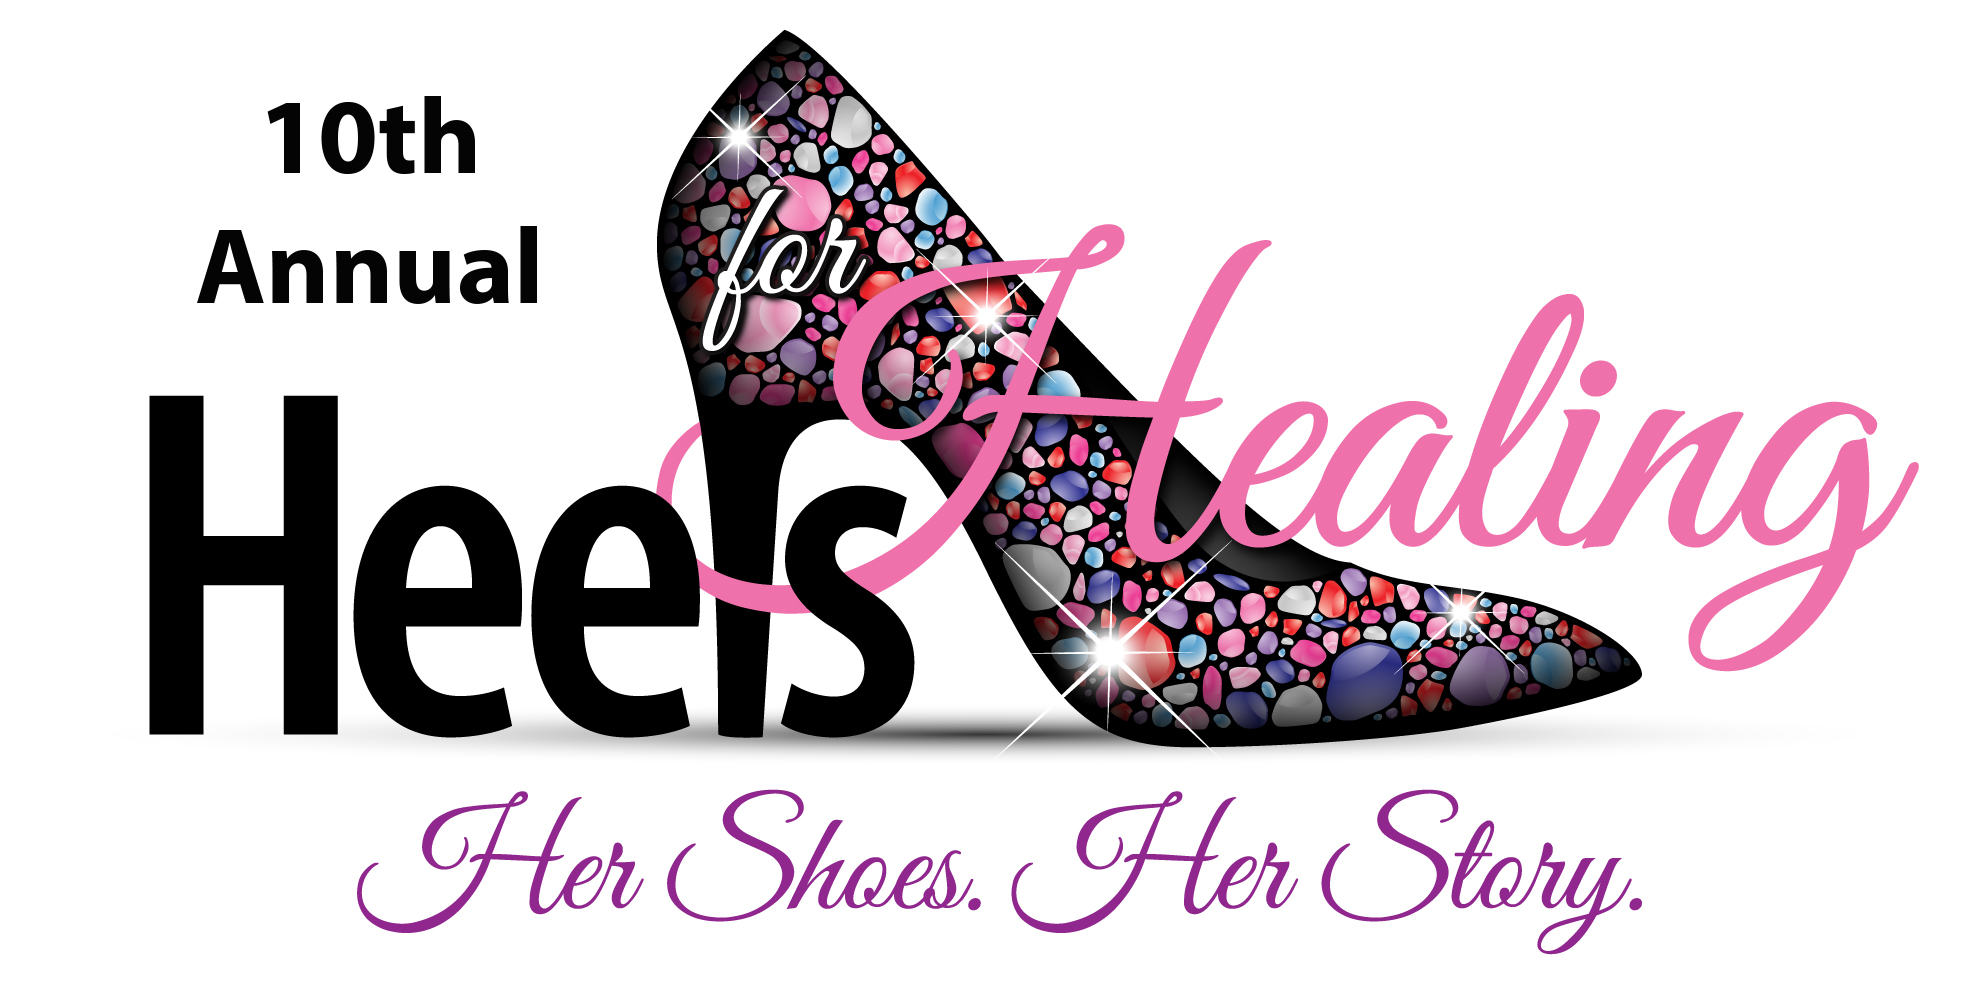 10th Annual Heels for Healing.jpg